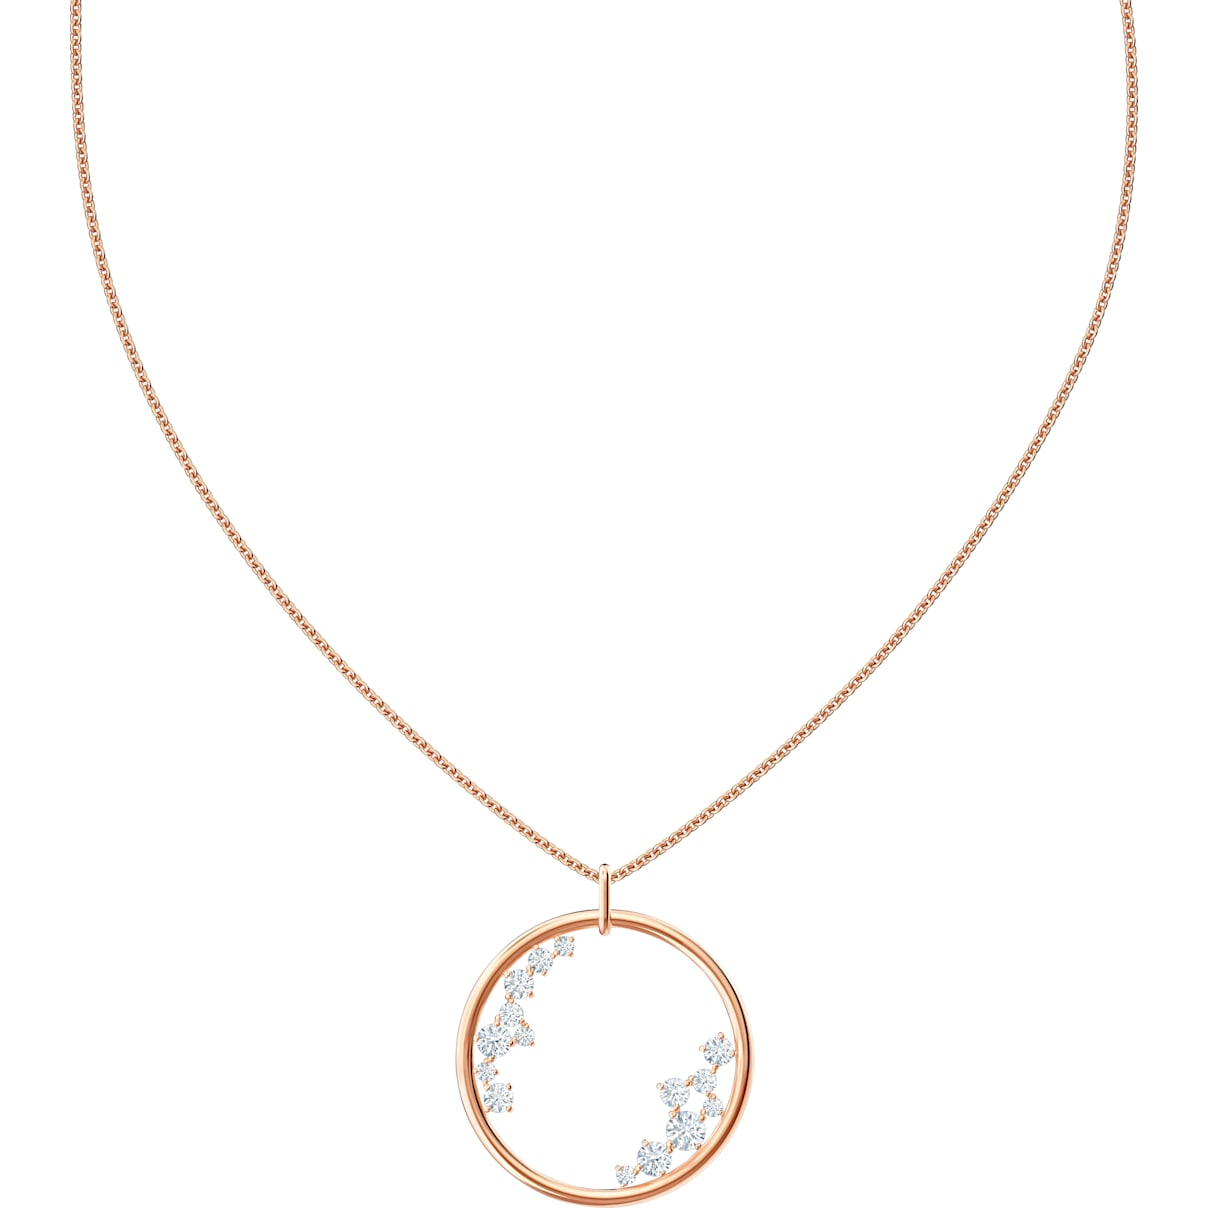 Swarovski North Pendant, White, Rose-gold tone plated